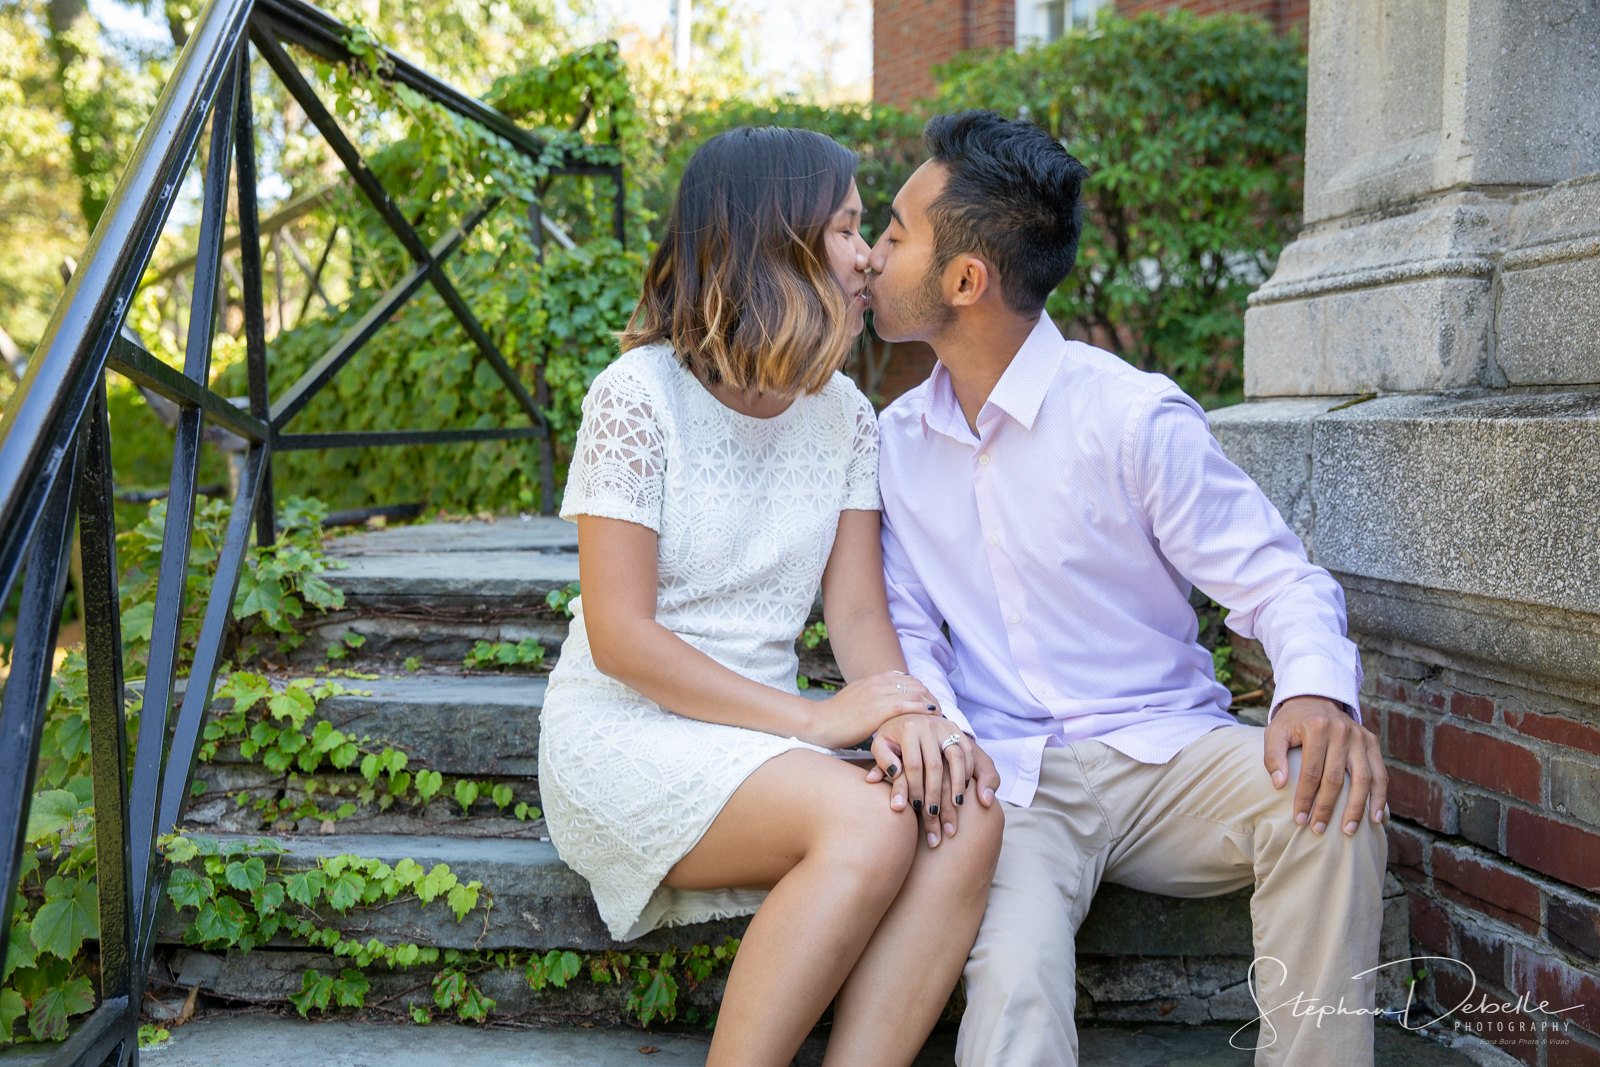 Amy & Ty - Engagement Shoot - Milford, CT